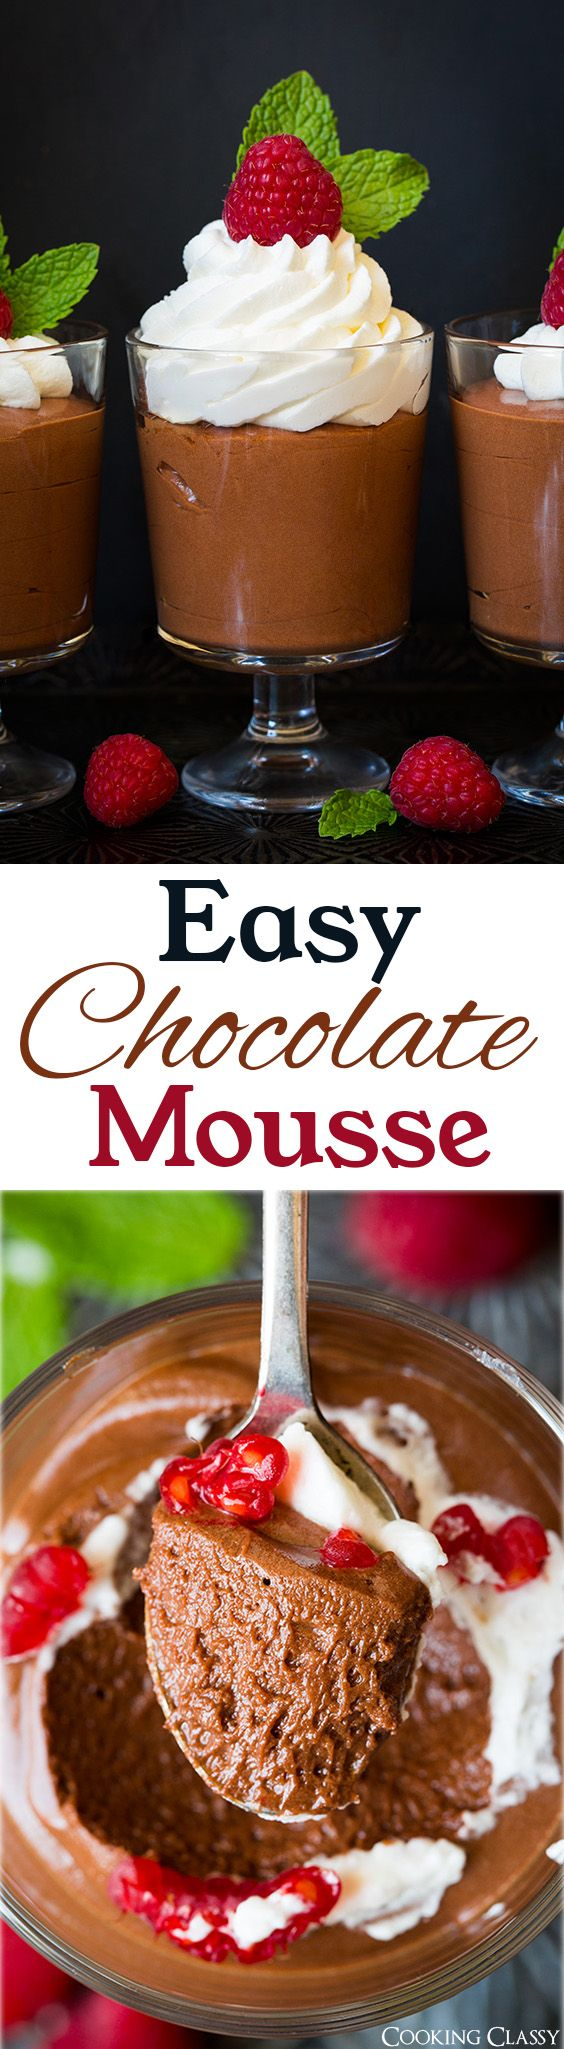 Easy Chocolate Mousse - so easy to make and tastes PERFECT! No raw eggs in this recipe! Uses marshmallows instead. And no waiting for hours for it to set.